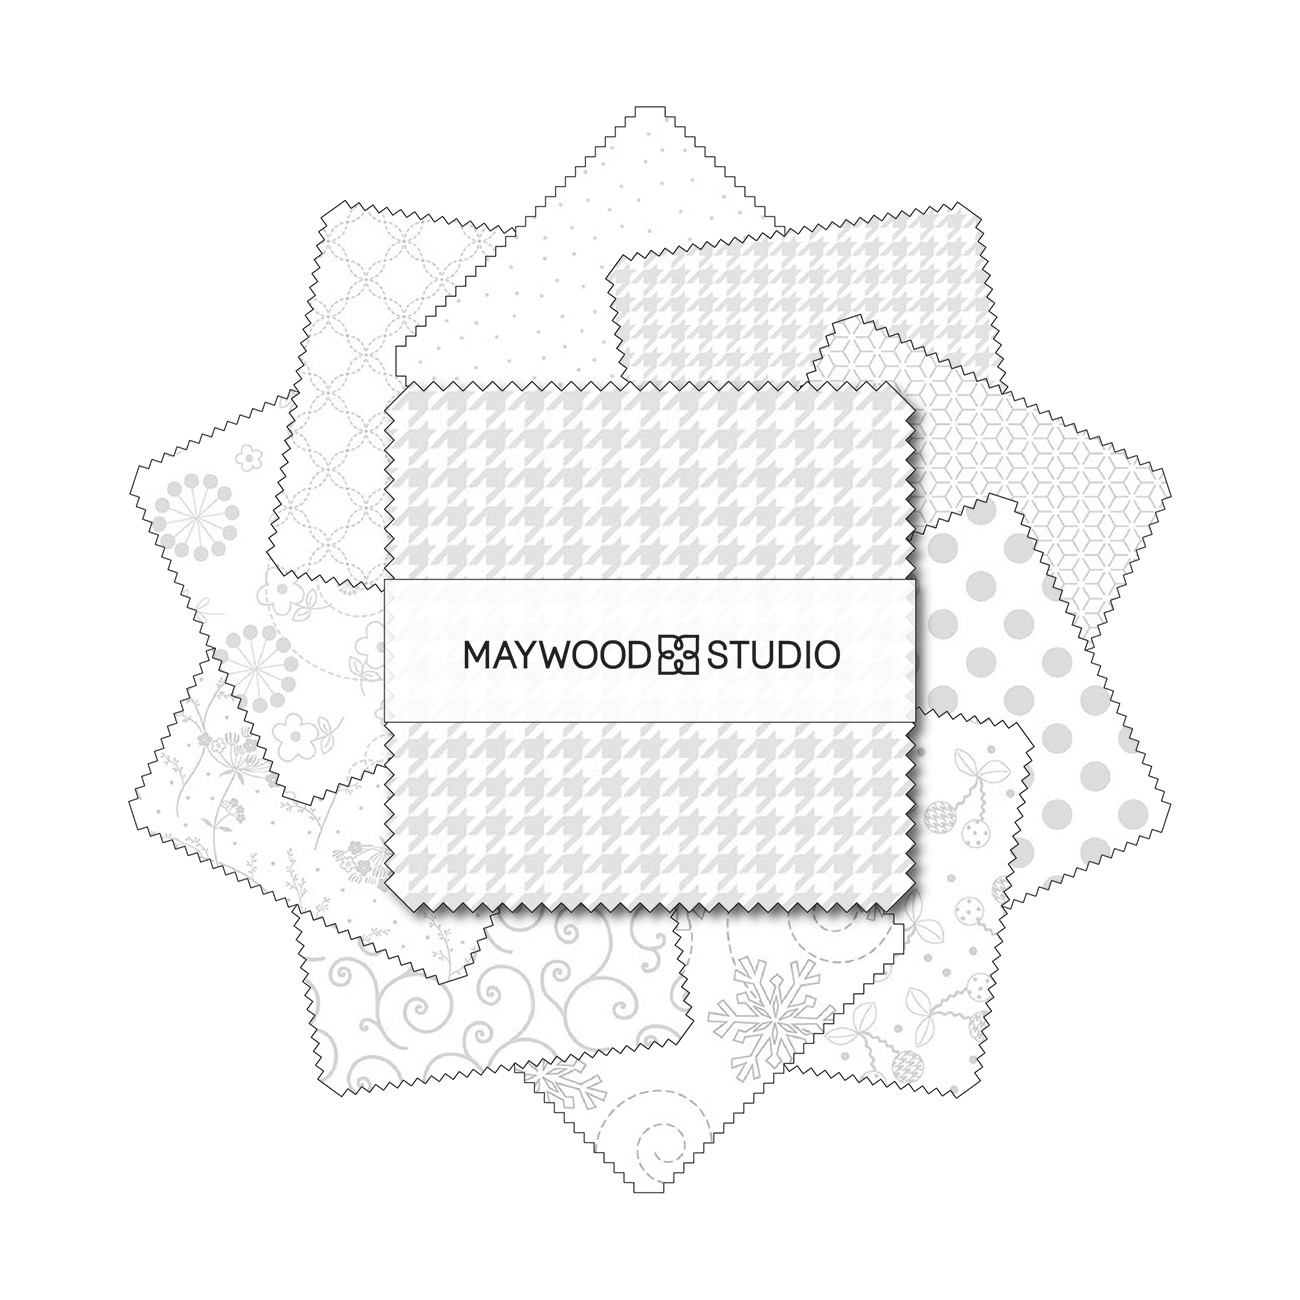 Complete Set 5in Squares 92pcsbundle # CP-KBB-ALL From Maywood Studio By Kimberbell Designs